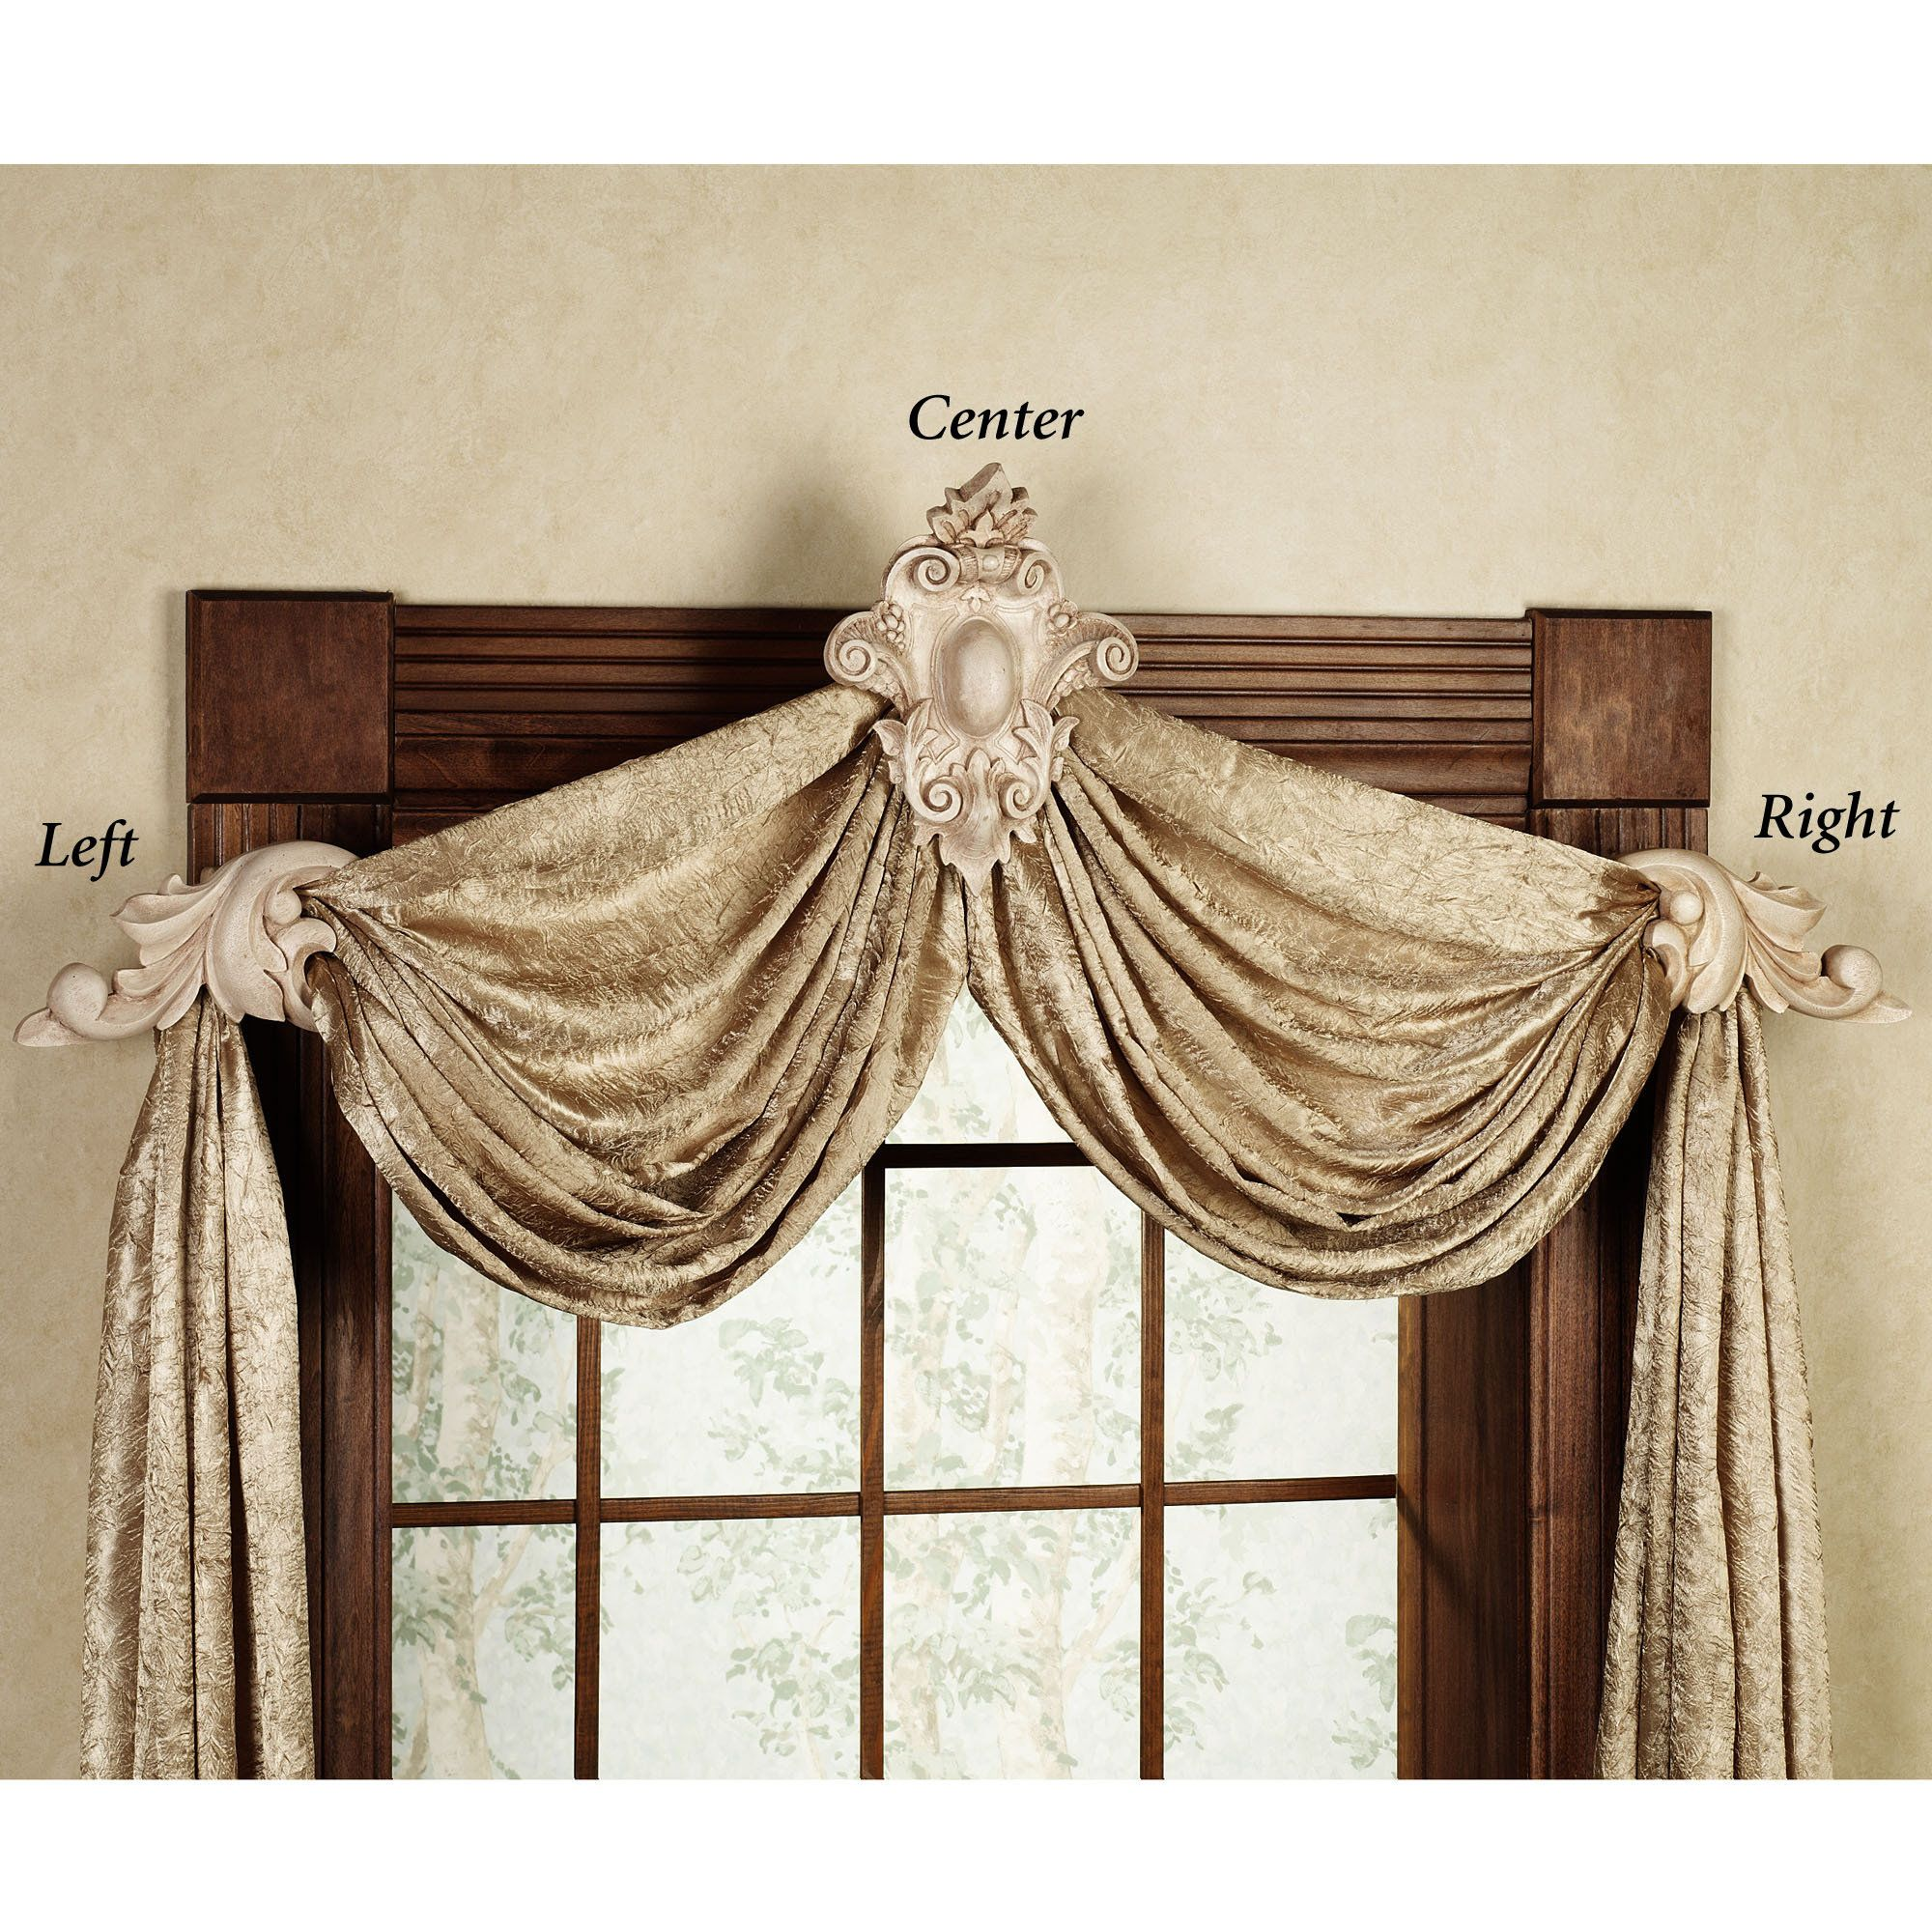 Home Hardware Windows Window Treatment Hardware Ideas Bindu Bhatia Astrology